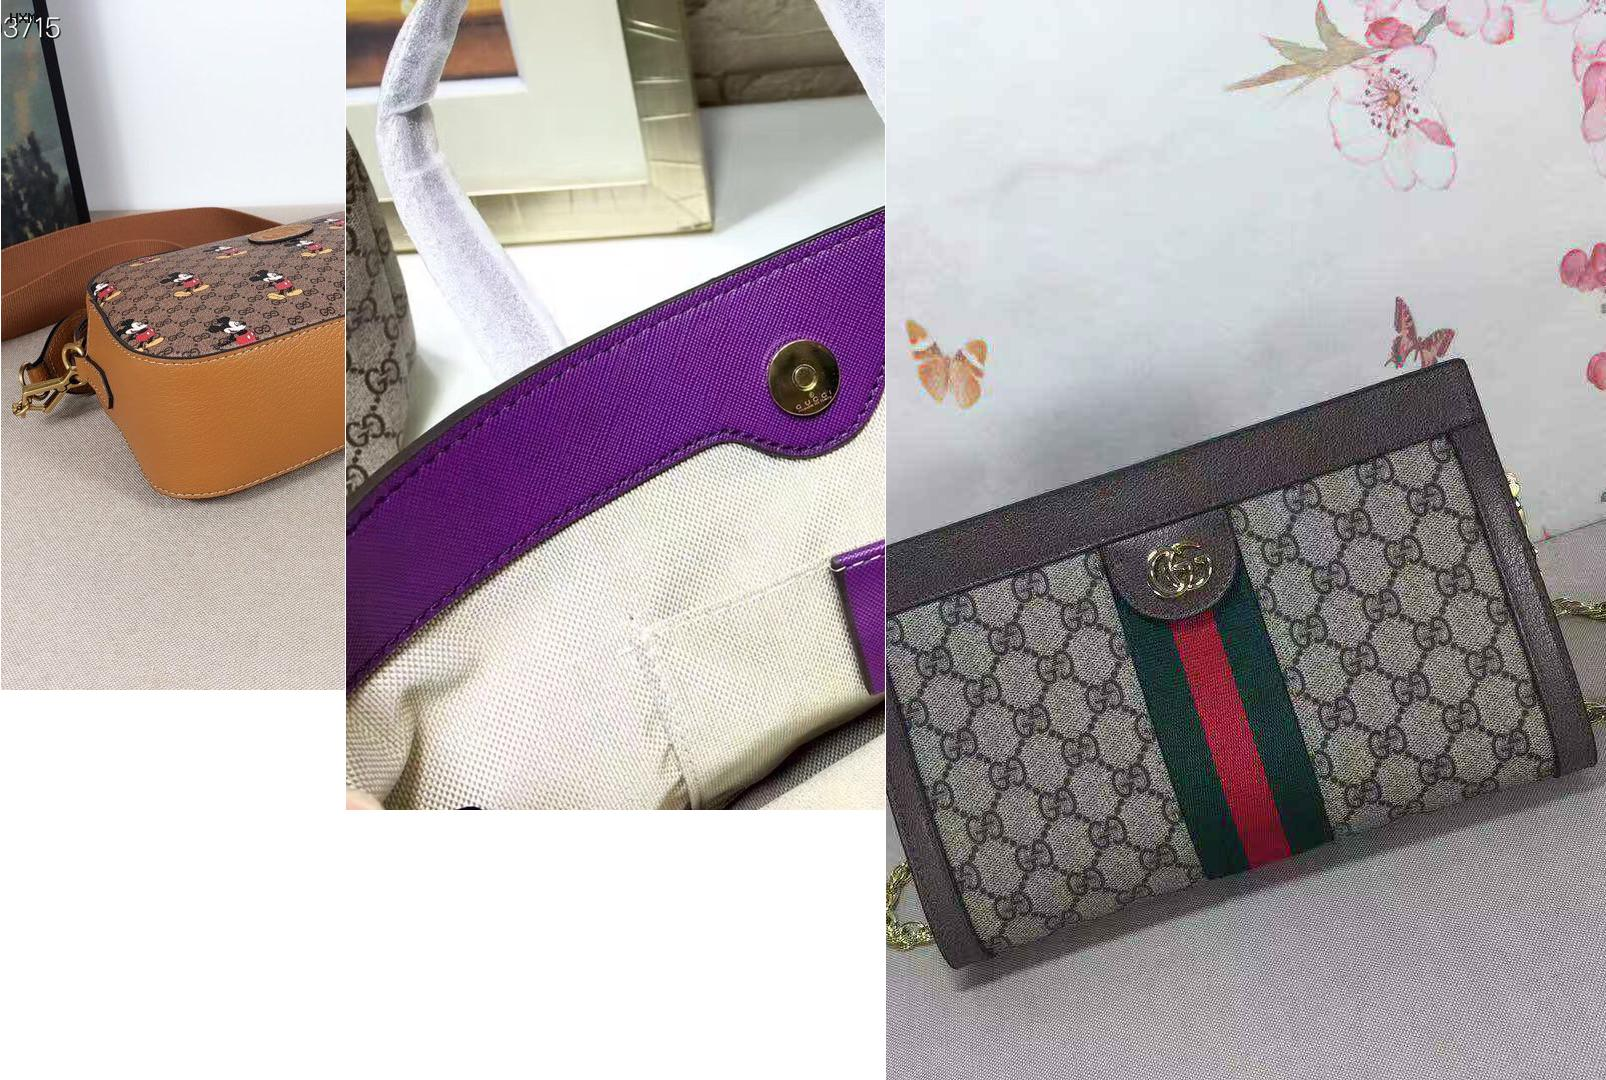 sac gucci bandouliere marmont